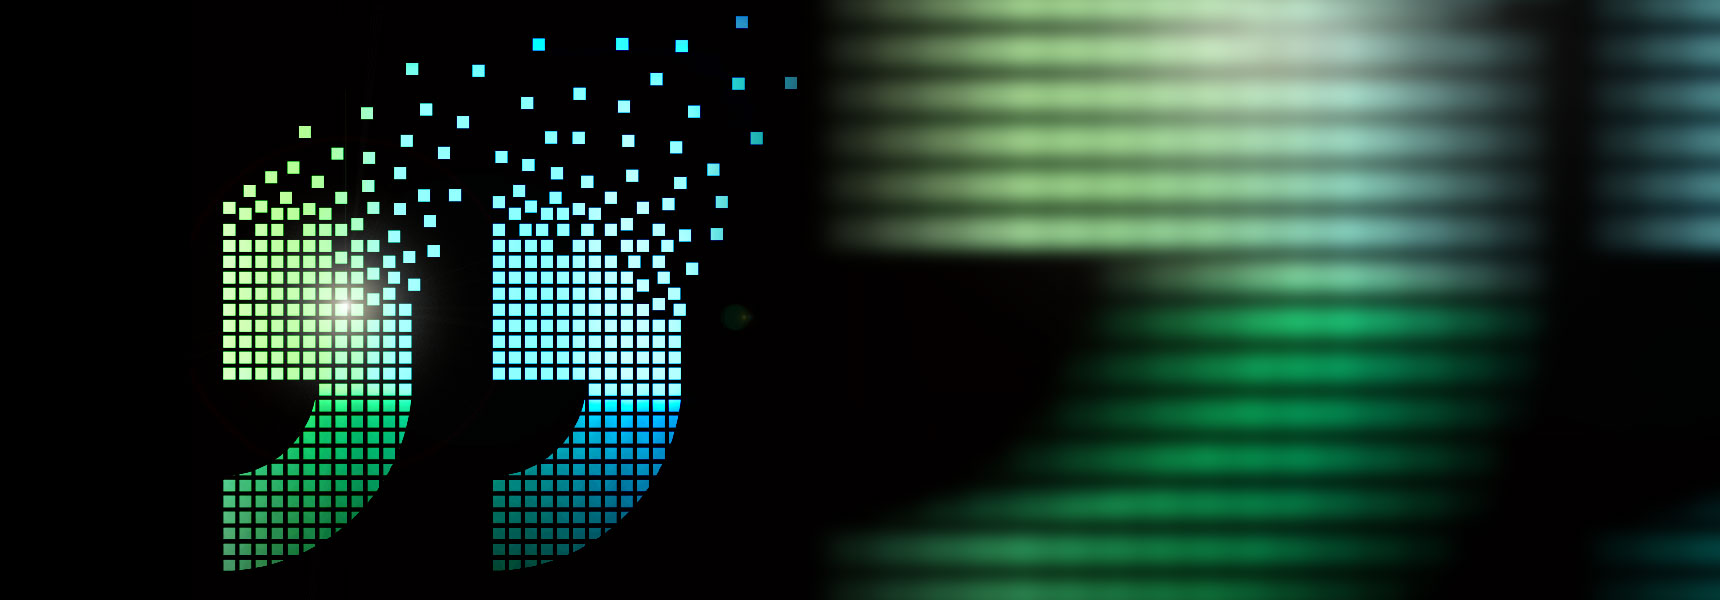 Cracking the Electronic Communications Code